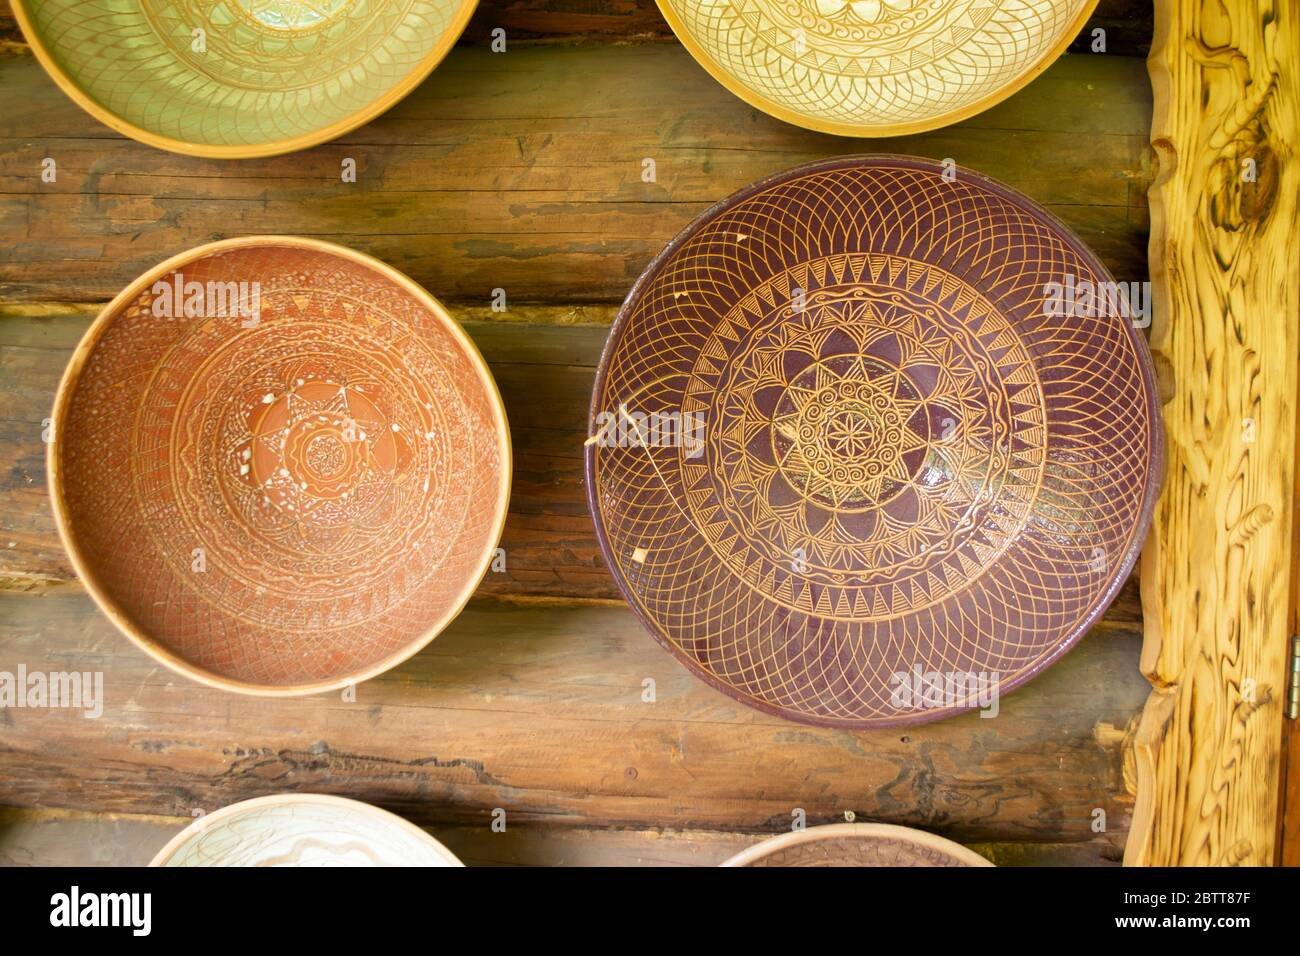 Rustic Handmade Ceramic And Clay Bowls And Plates Decorated By Traditional Ornament And Pattern Authentic From Belarus Stock Photo Alamy